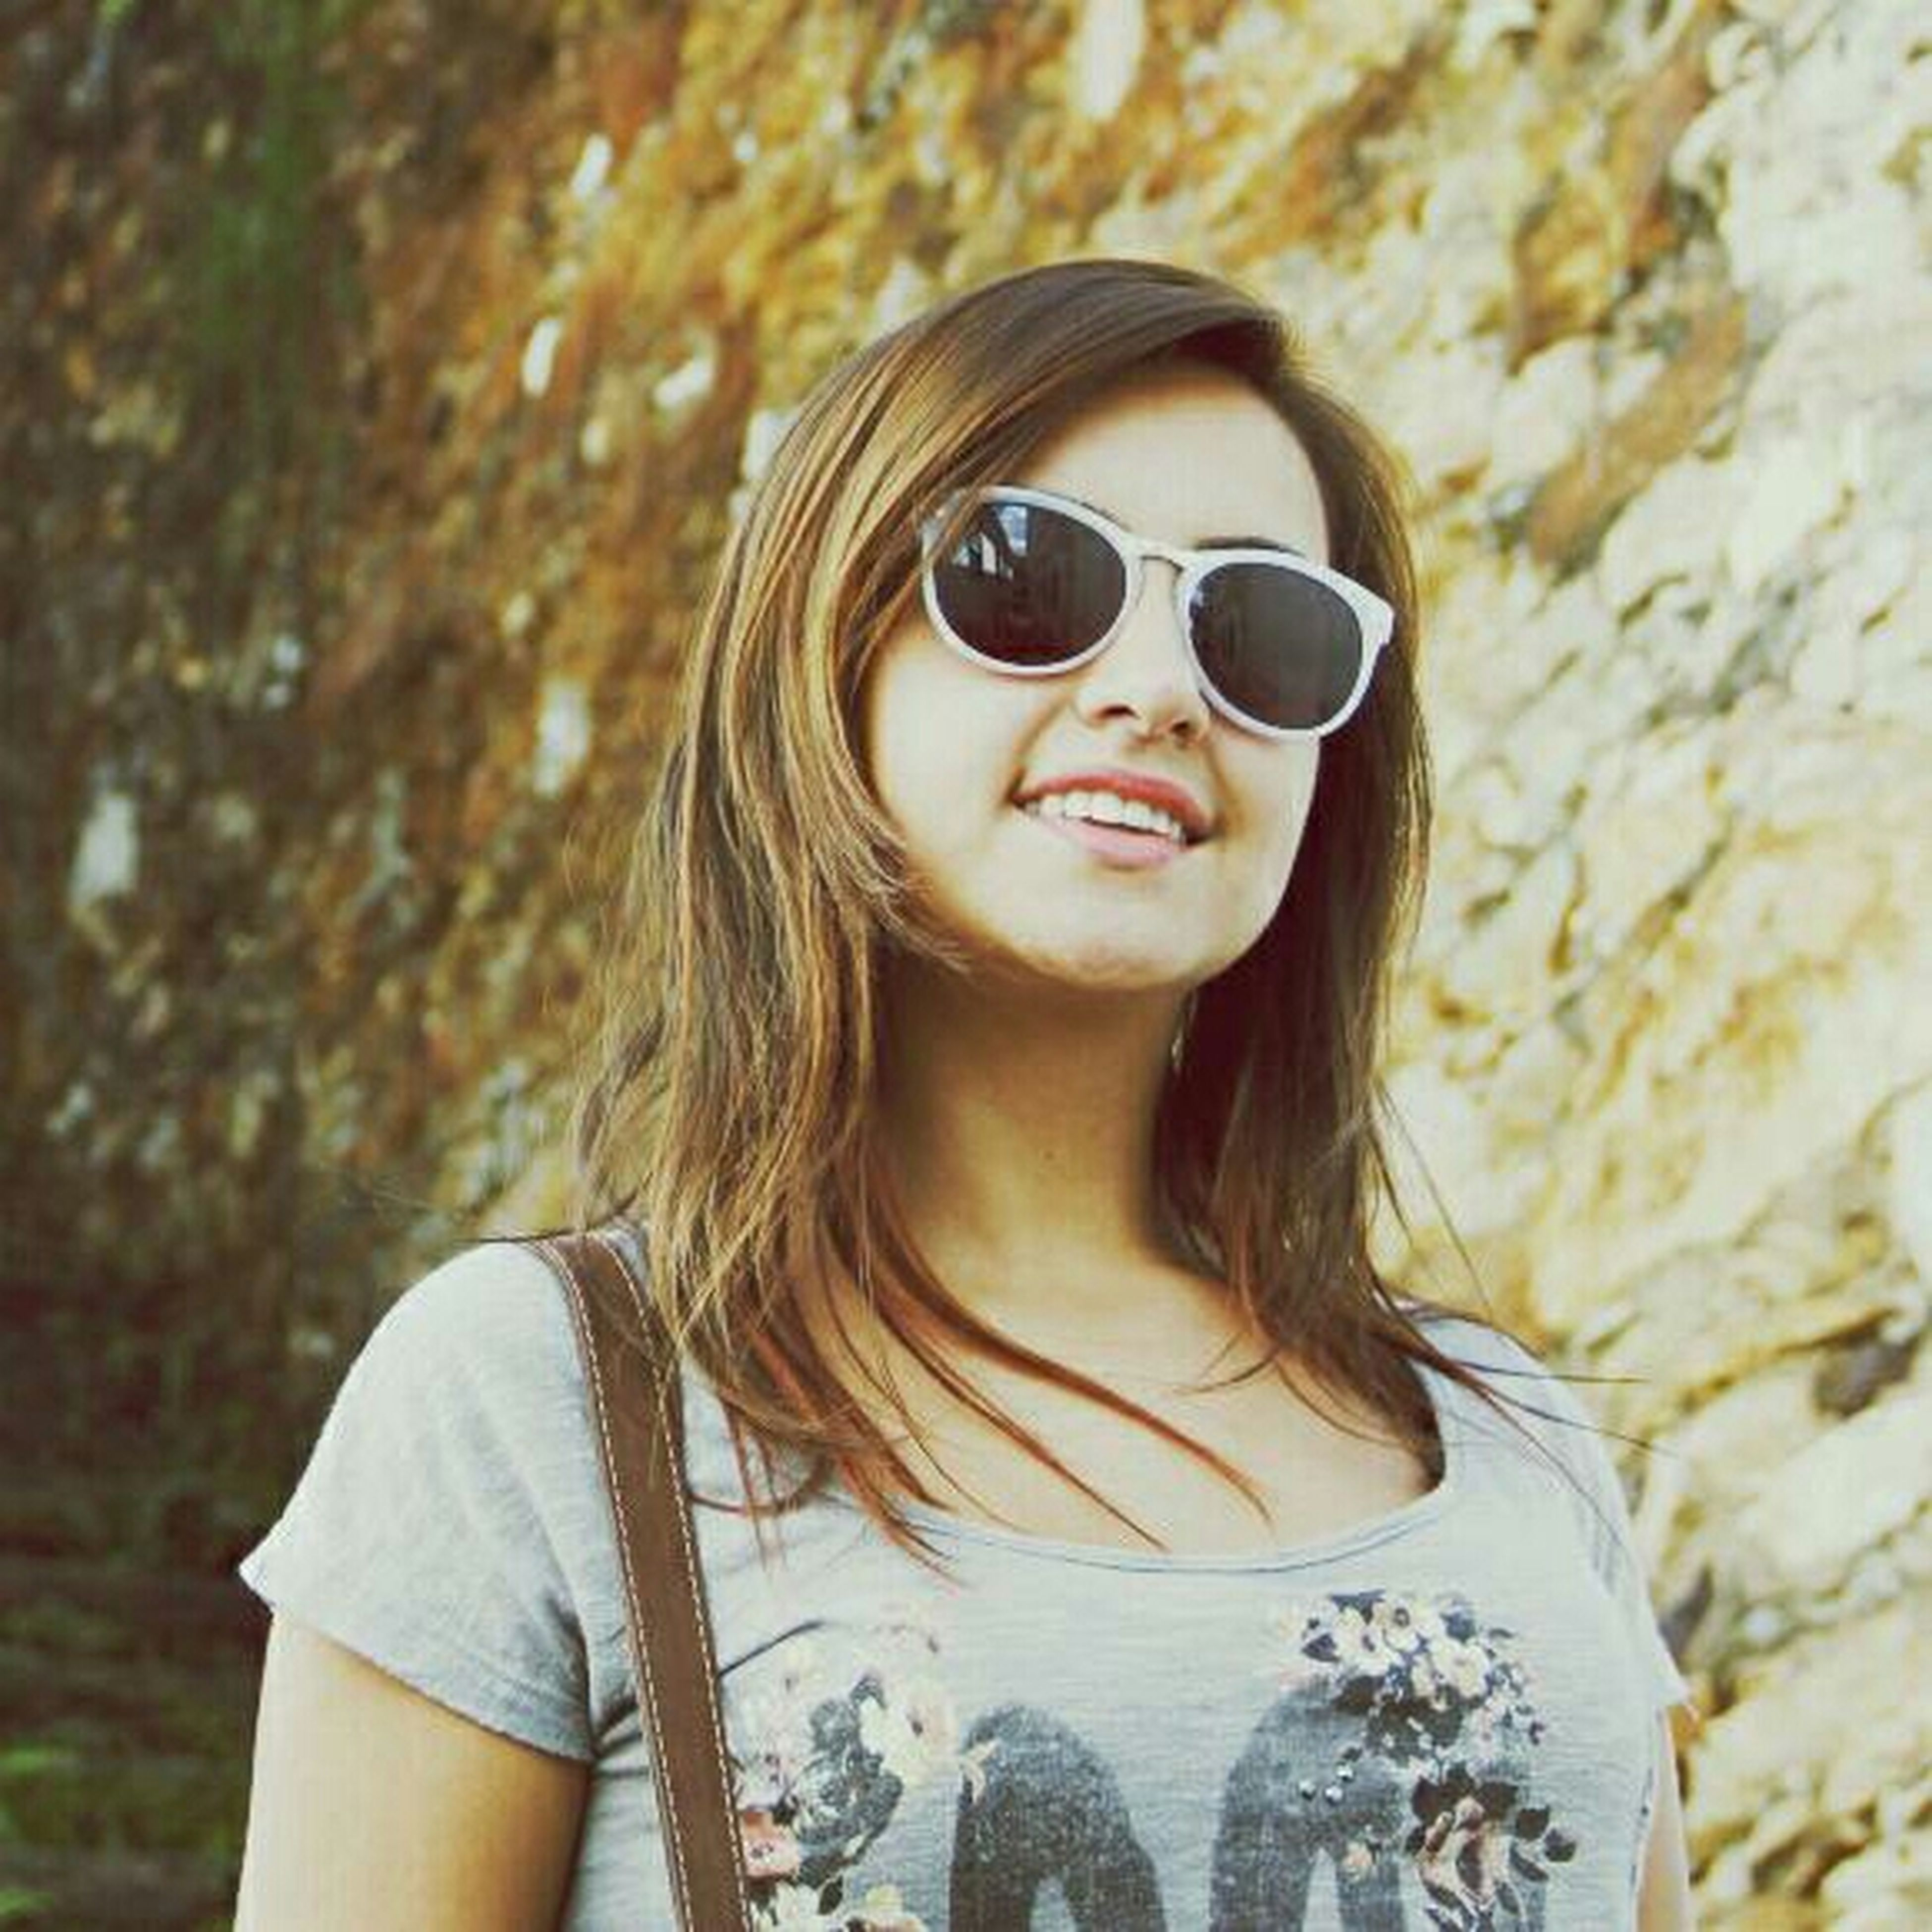 young adult, lifestyles, portrait, looking at camera, person, sunglasses, leisure activity, young women, front view, headshot, focus on foreground, casual clothing, long hair, head and shoulders, waist up, smiling, standing